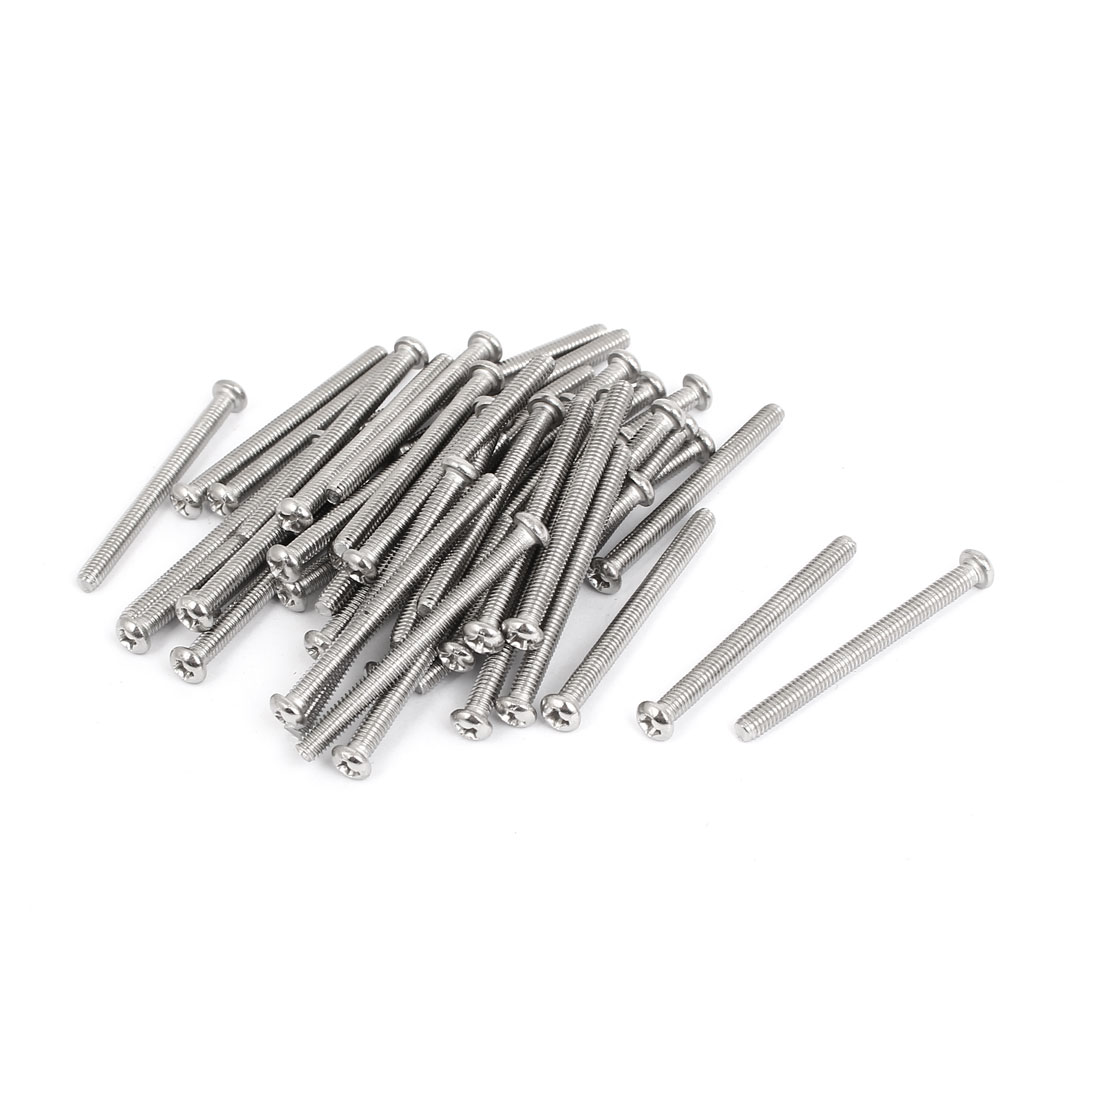 M4x45mm Stainless Steel Phillips Round Pan Head Machine Screws 50pcs